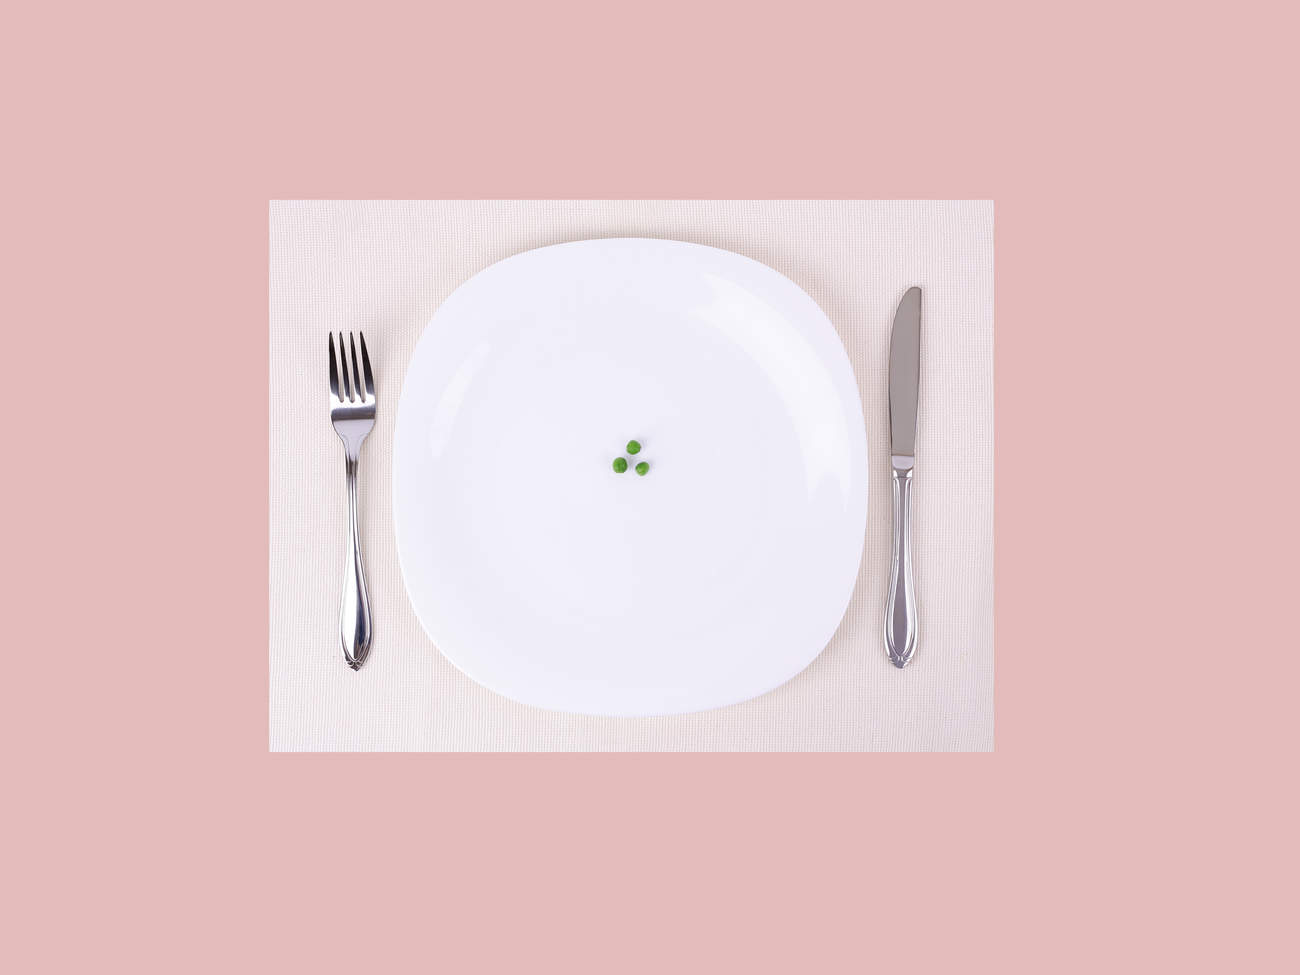 fasting-diet-eating-disorder-peas-anorexia